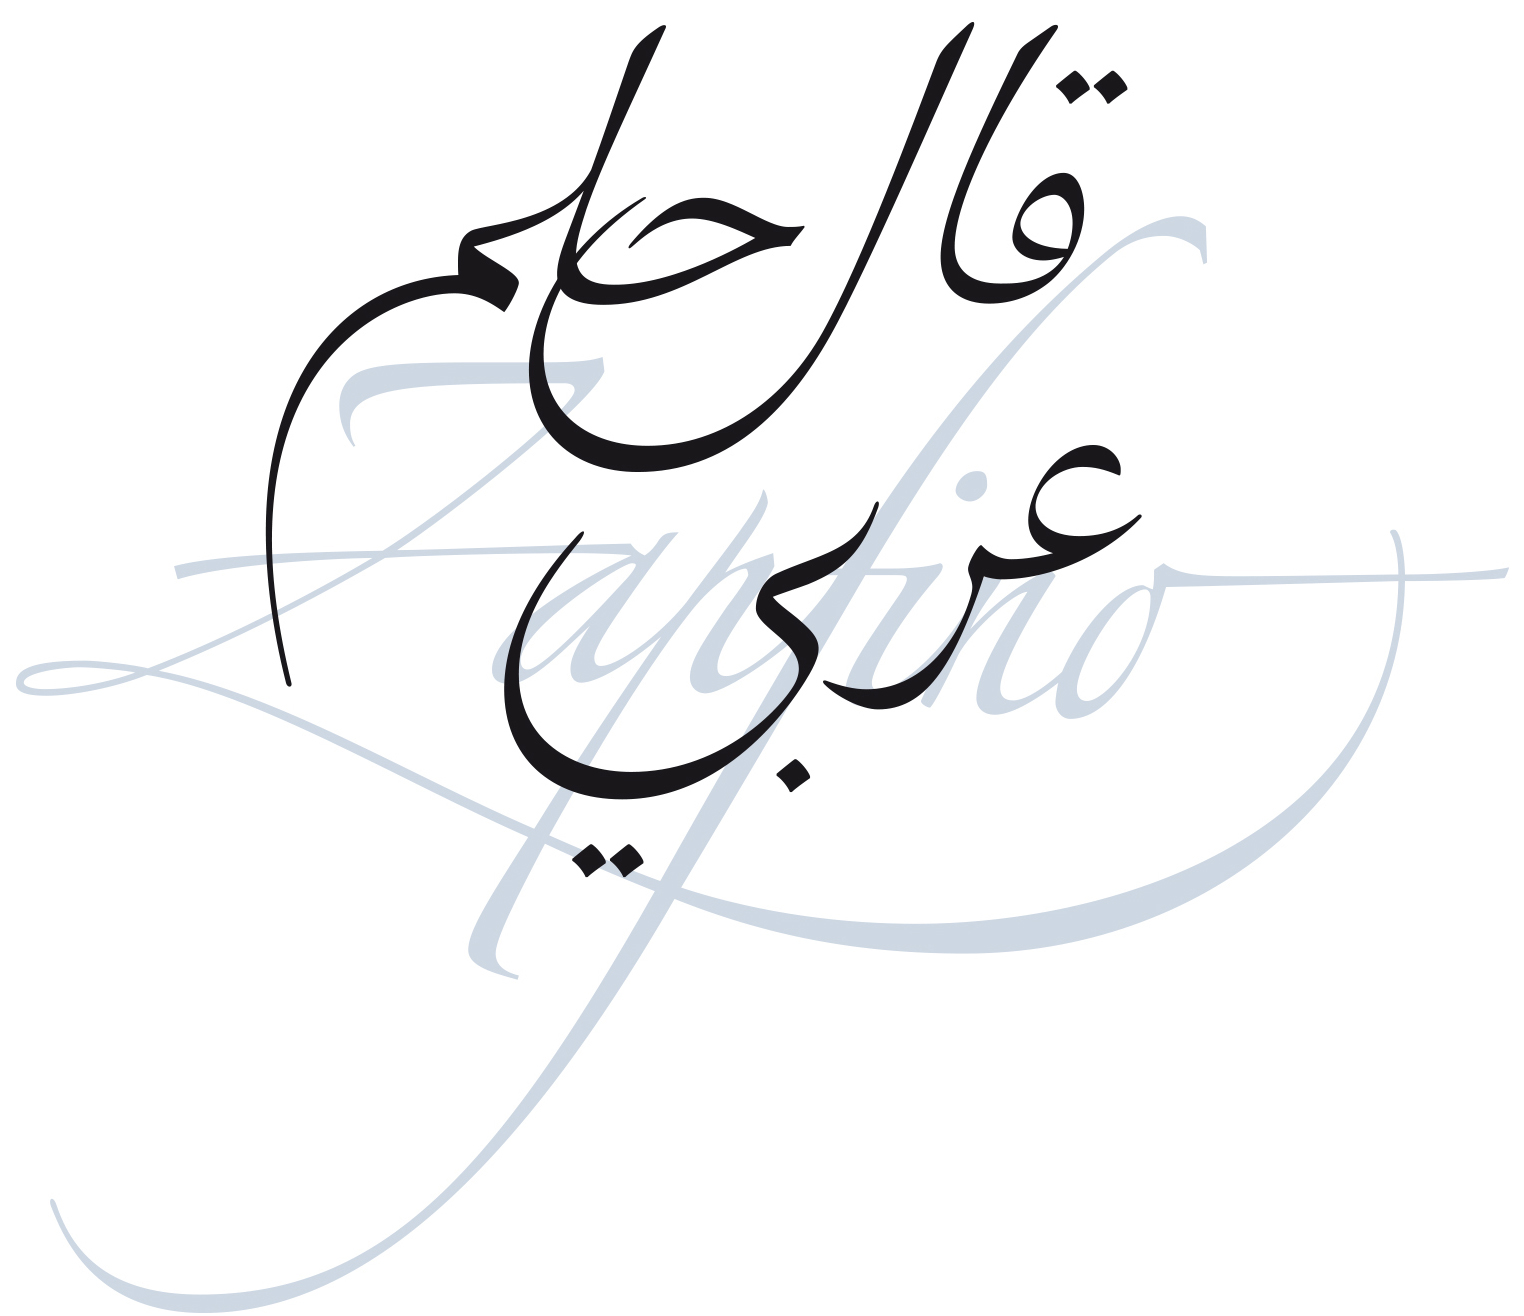 An image showing both Zapfino and Zapfino Arabic, which Nadine designed in collaboration with Hermann Zapf